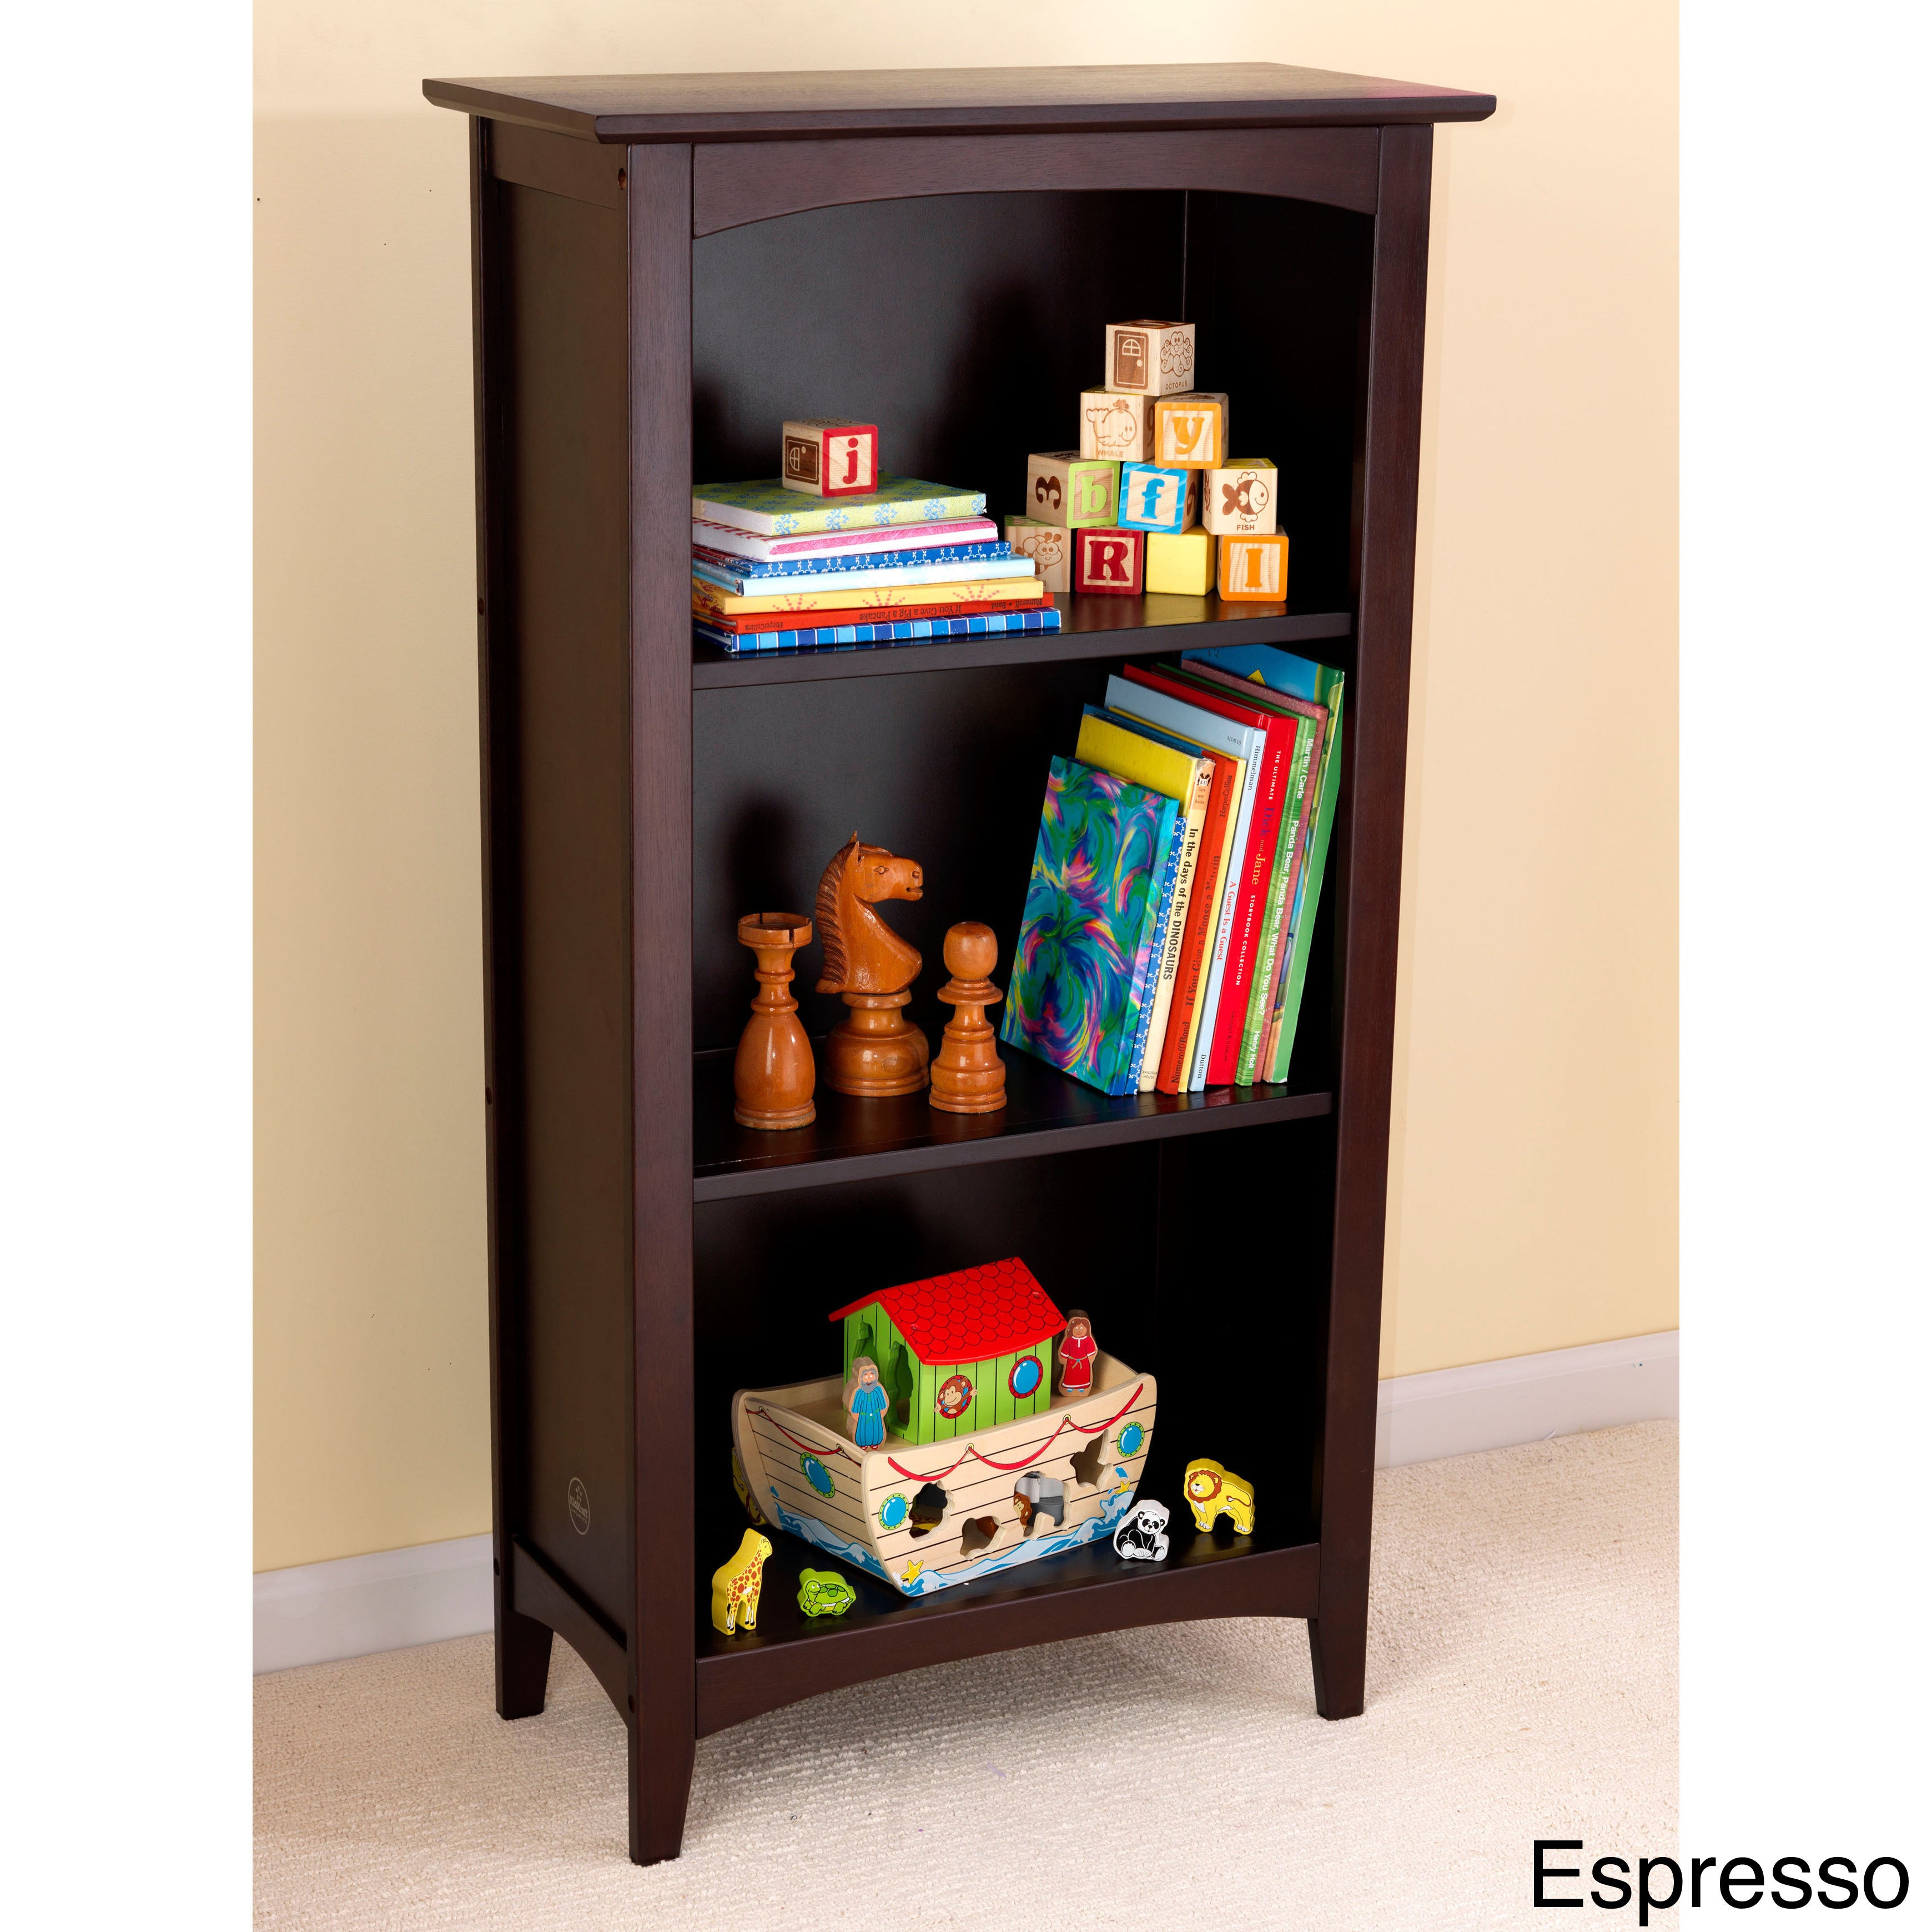 slanted tall bookcase small slim where depth bookshelf living long and shelf room wide cheap to corner doors with buy bookshelves low white black drawers